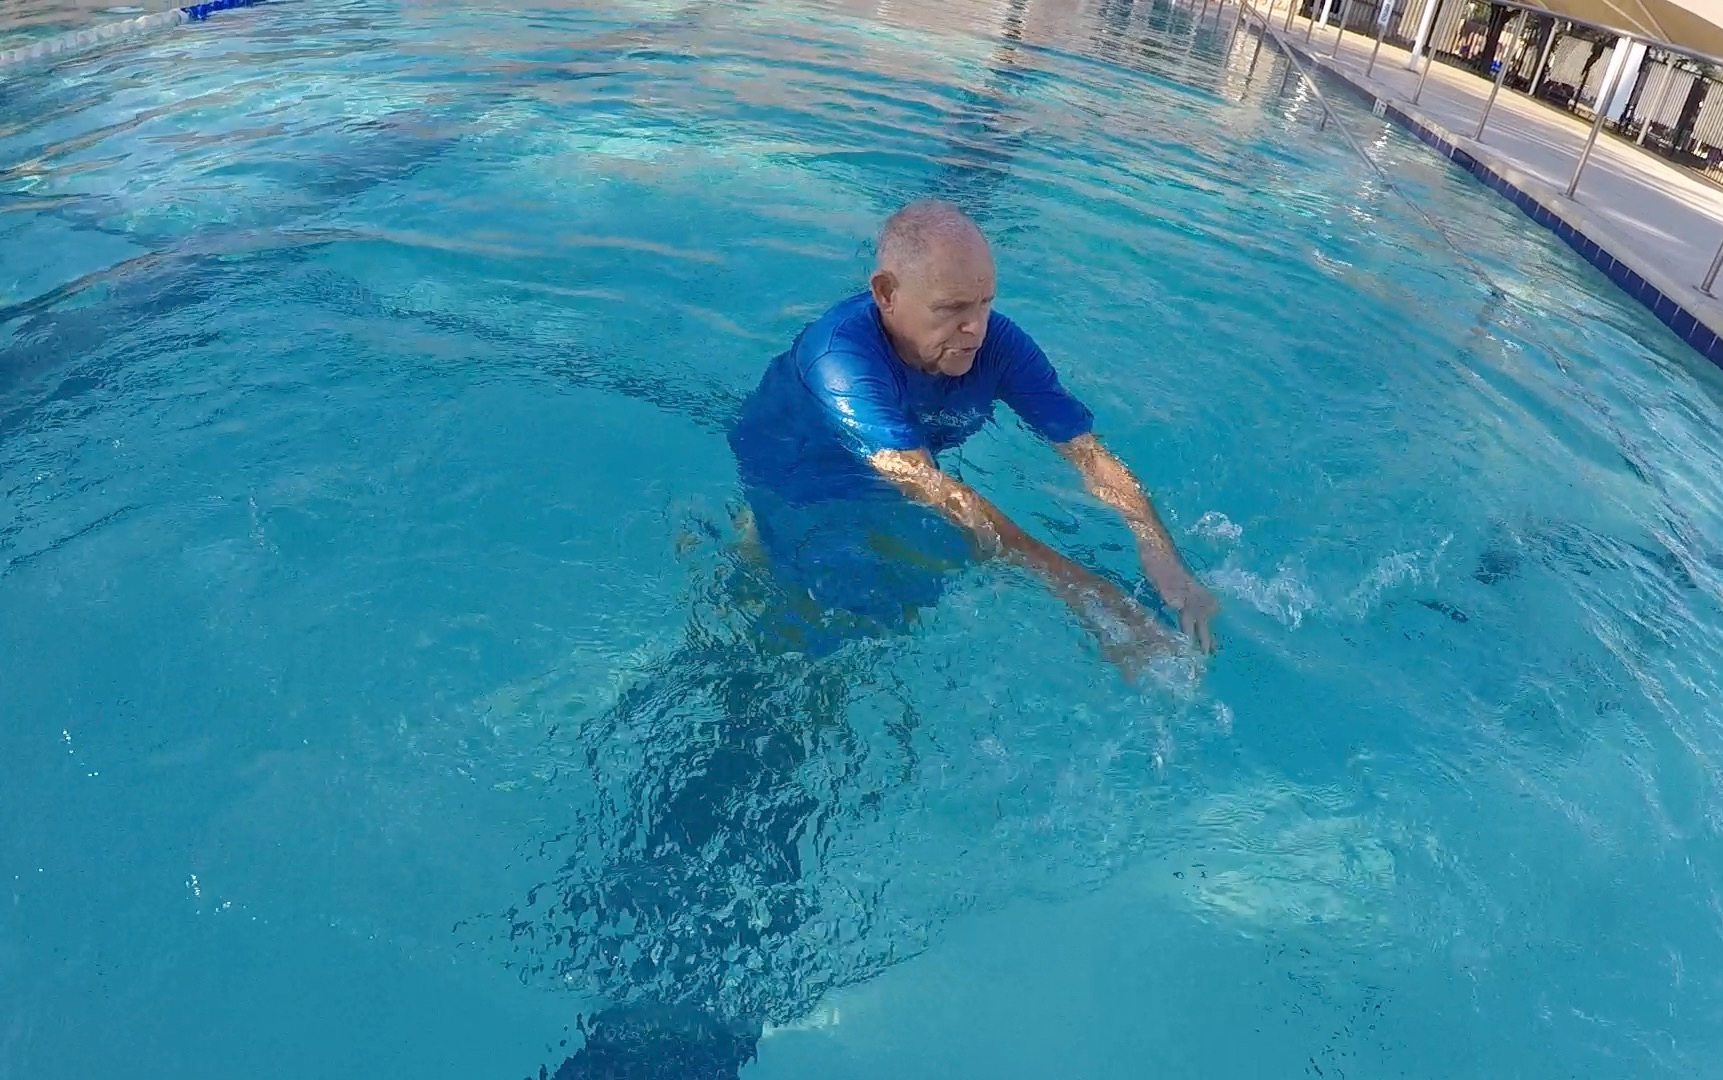 Nothing Beats Swim-A-Day for Health and Wellness. - If you have a bad knee or arthritis issues, Swim-A-Day is the perfect workout for all your muscles!Click here to learn more about the health benefits!➝